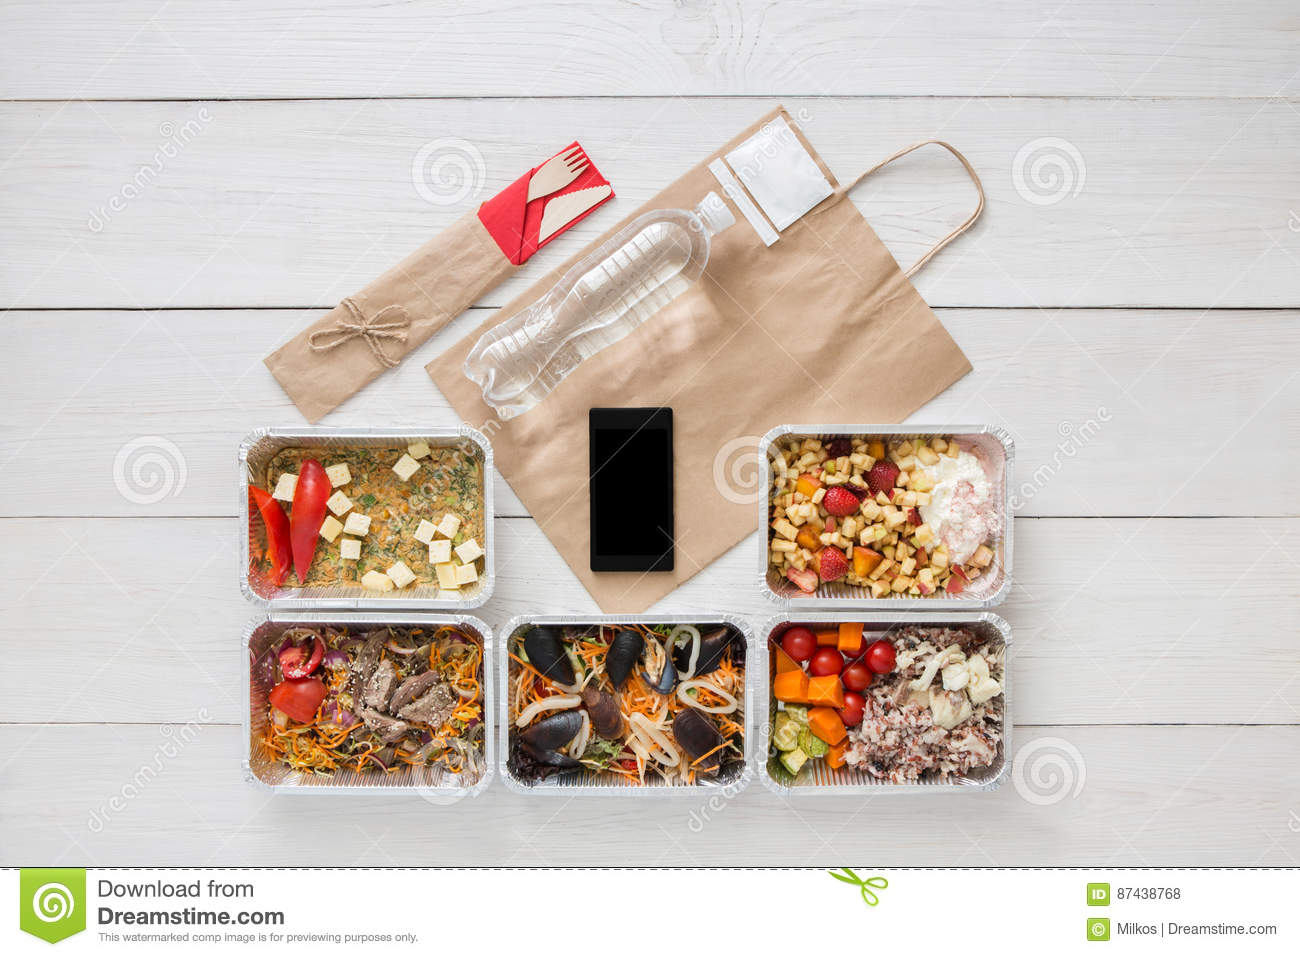 Can i buy healthy food online - Healthy Food Online Order In Boxes Top View At Wood